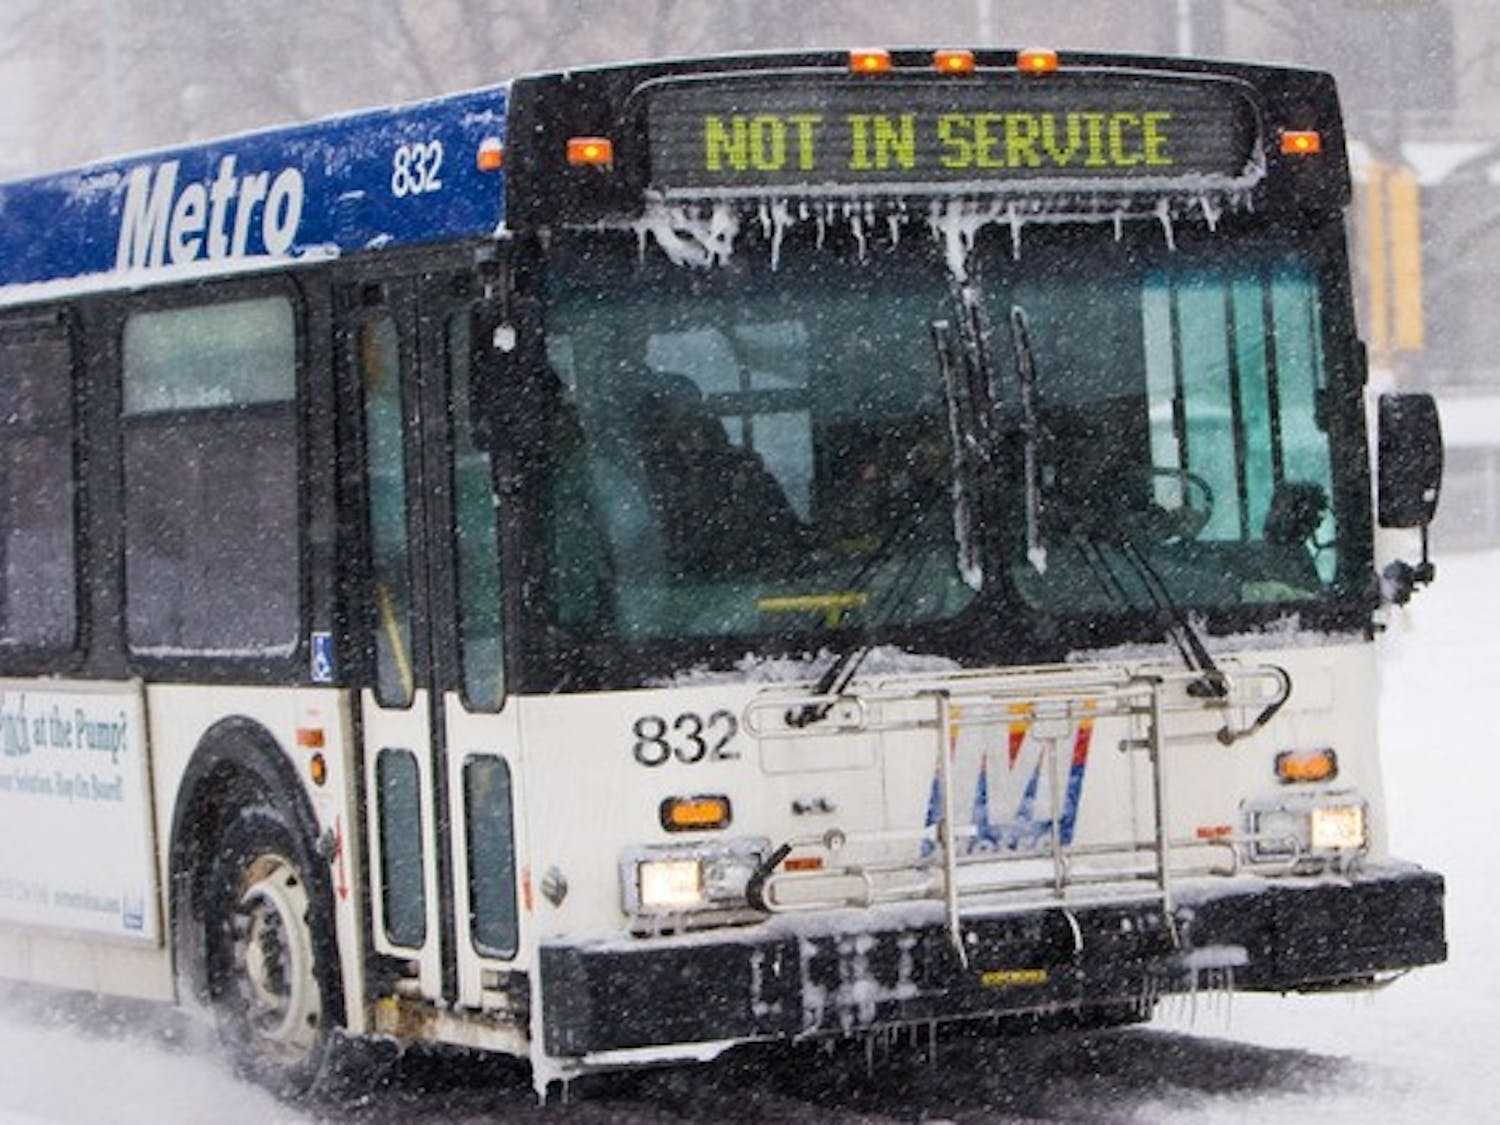 Common Council approves 50 cent bus fare increase